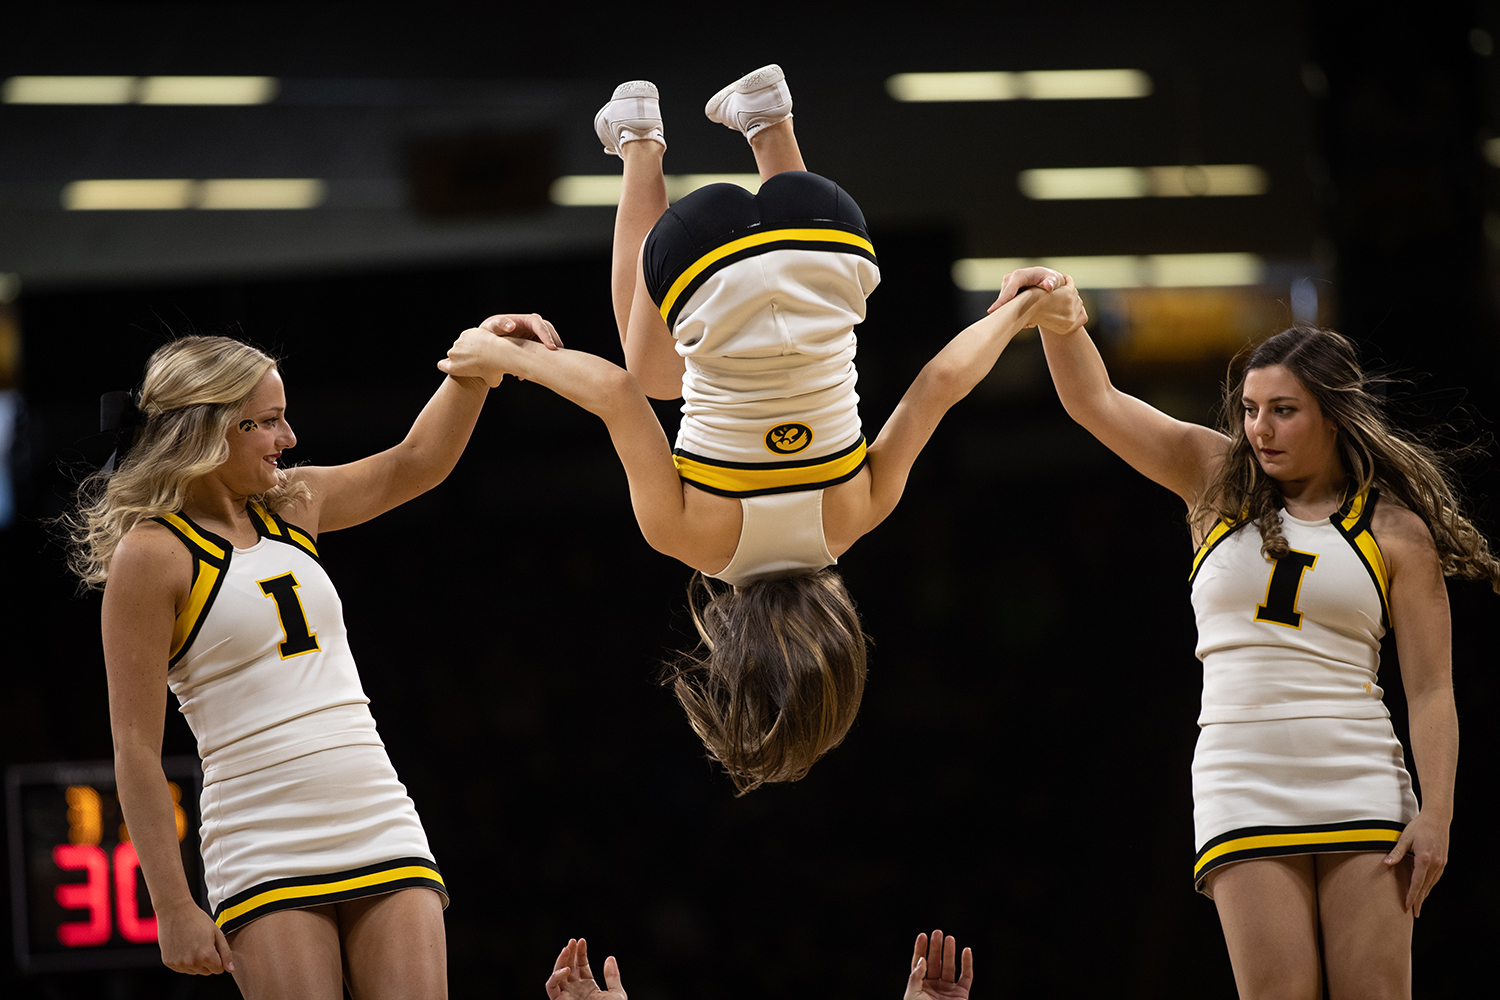 The+Spirit+Squad+perferms+their+dance+during+the+men%27s+basketball+game+against+Savannah+State+at+Carver-Hawkeye+Arena+on+Tuesday%2C+December+22%2C+2018.+The+Hawkeyes+defeated+the+Tigers+110-64.